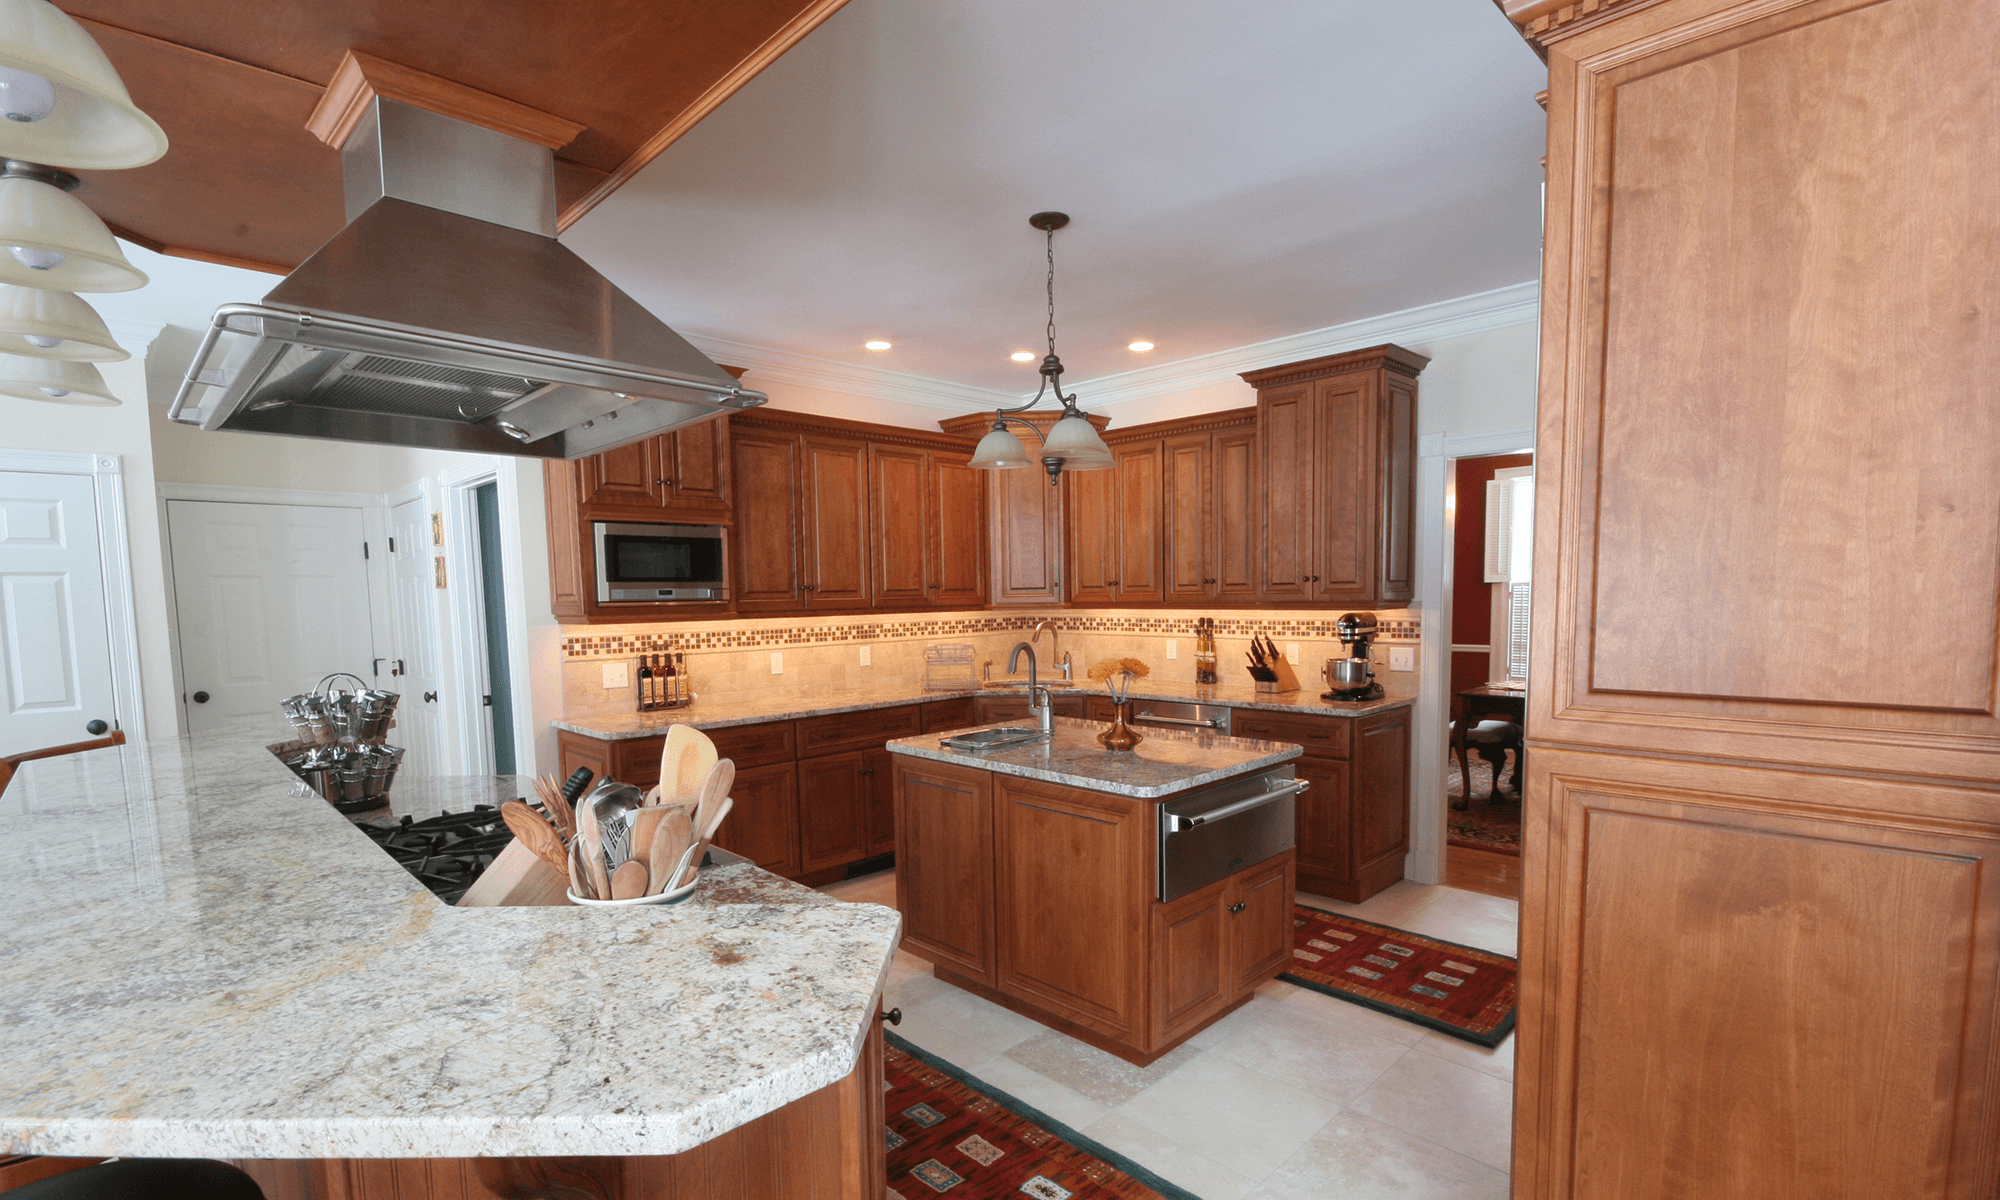 Cavenaro Kitchen by B.J. Kennison Kitchens business approach